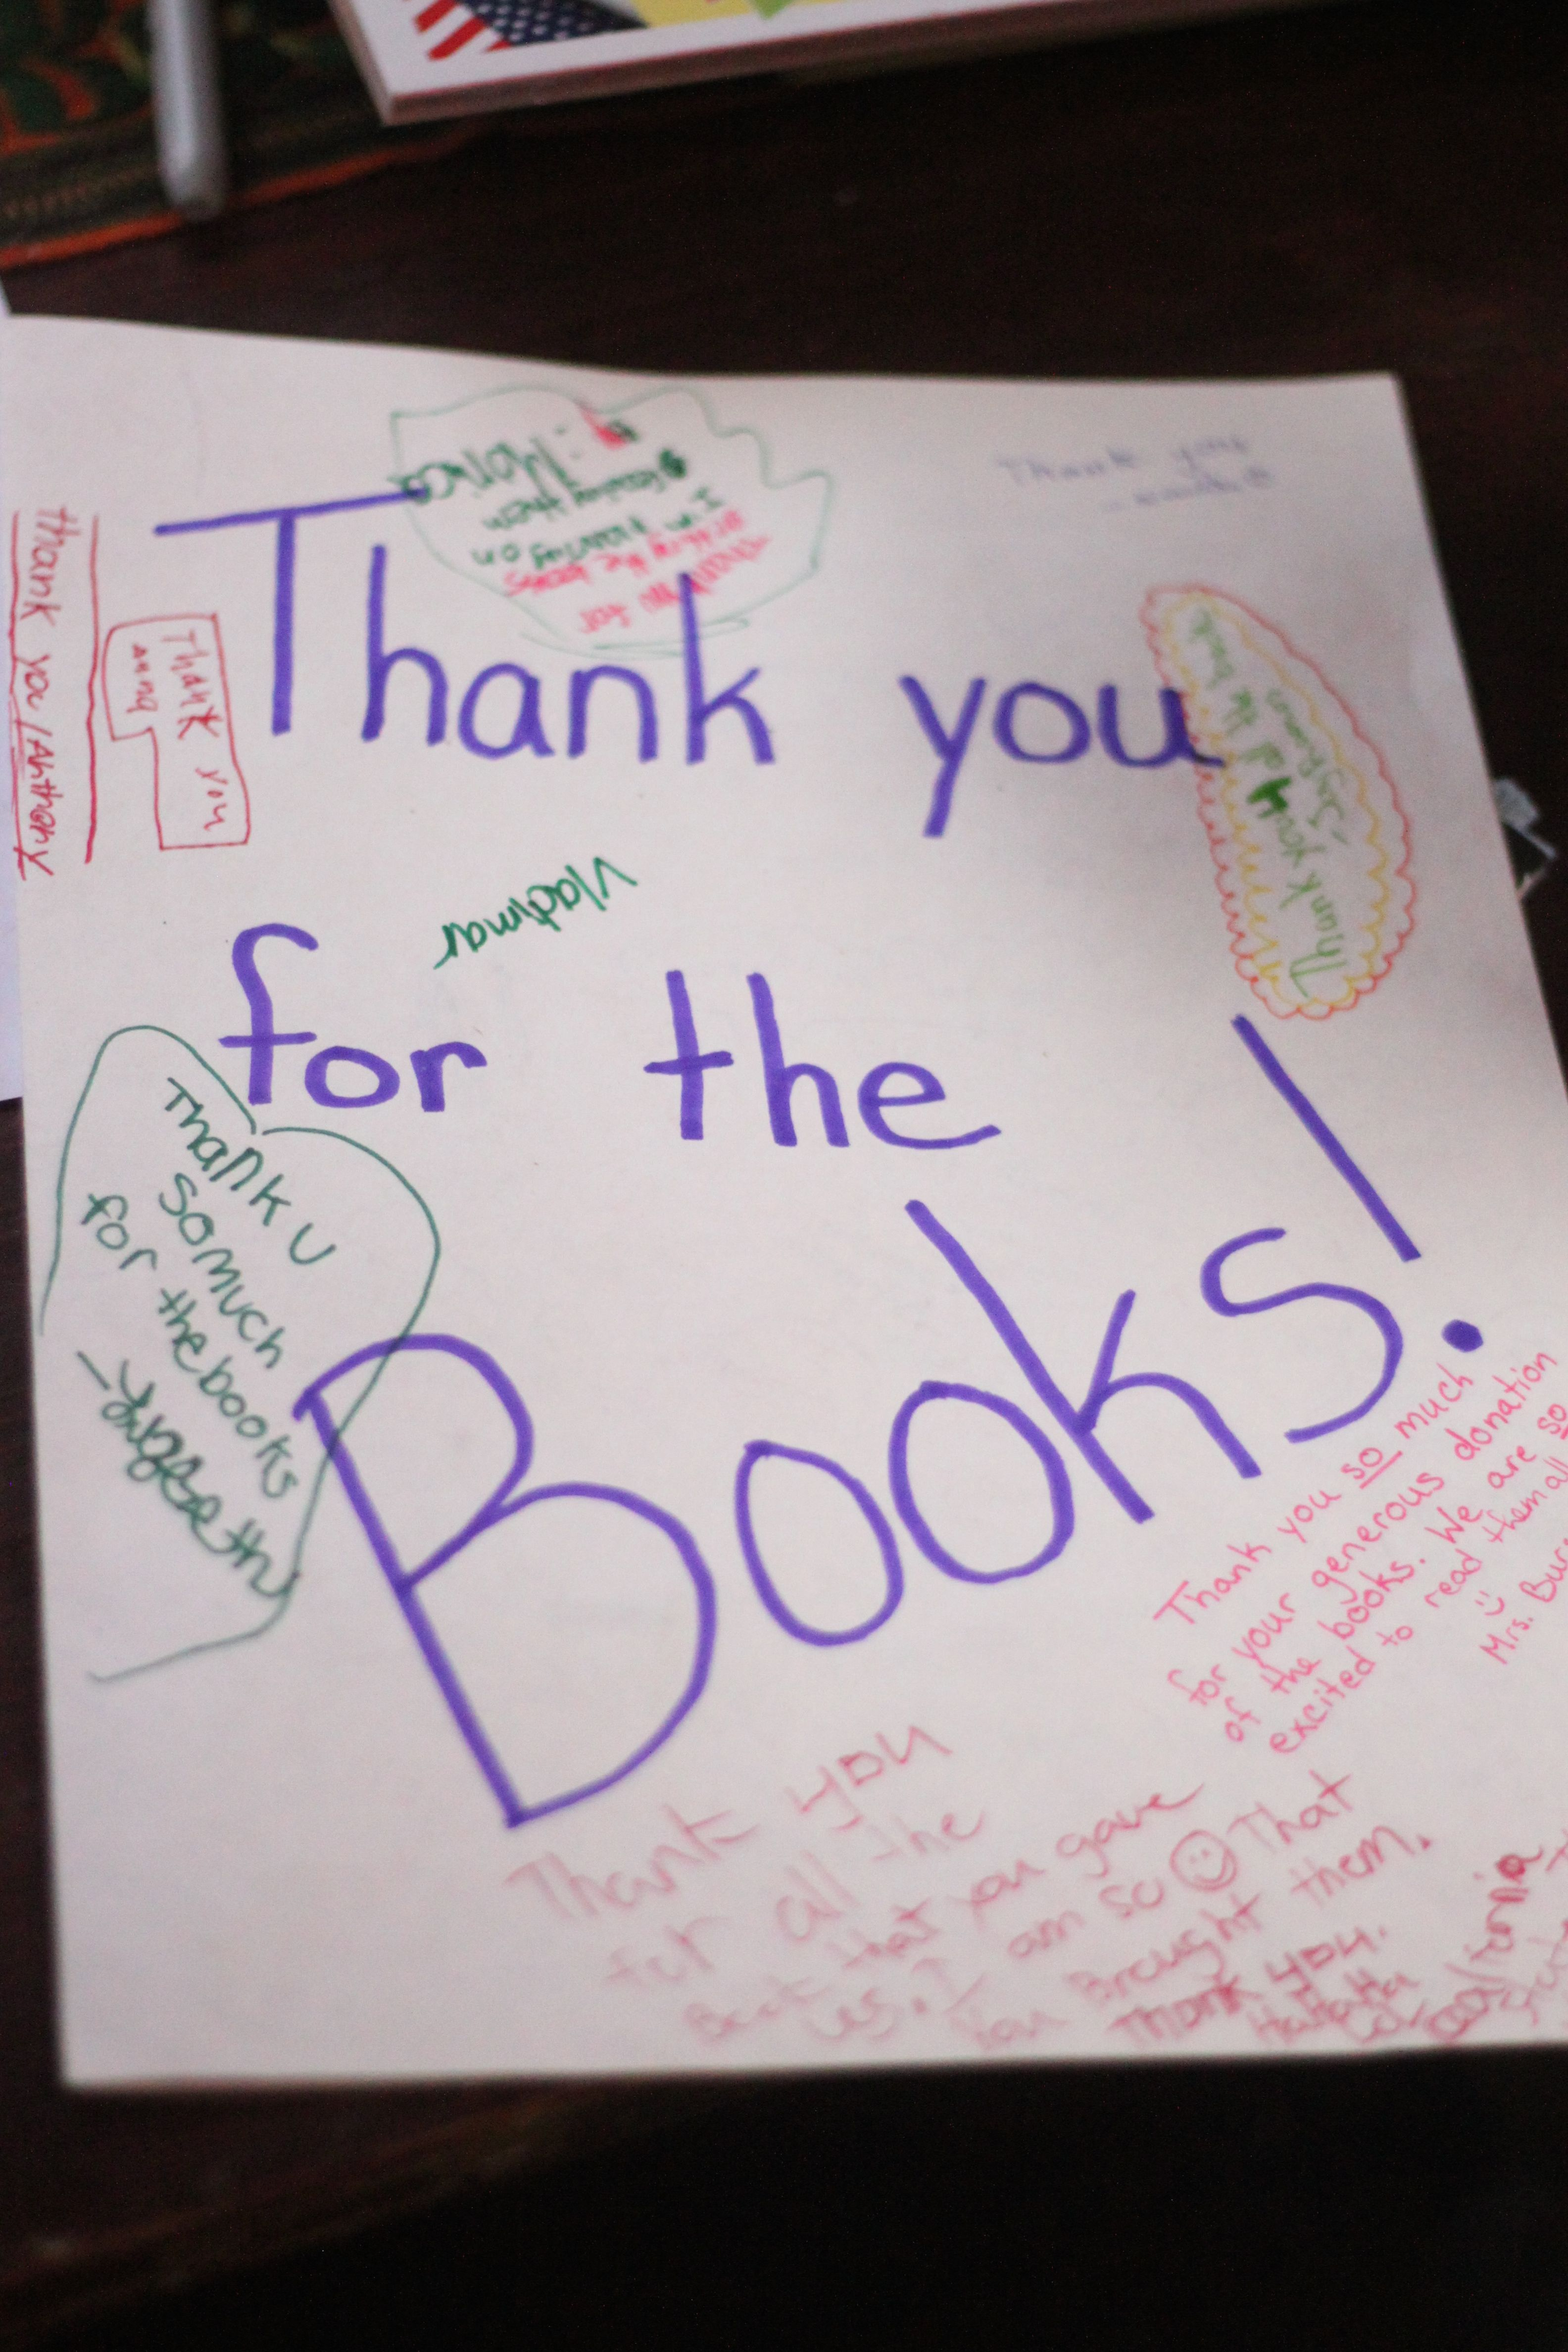 thank you for the books